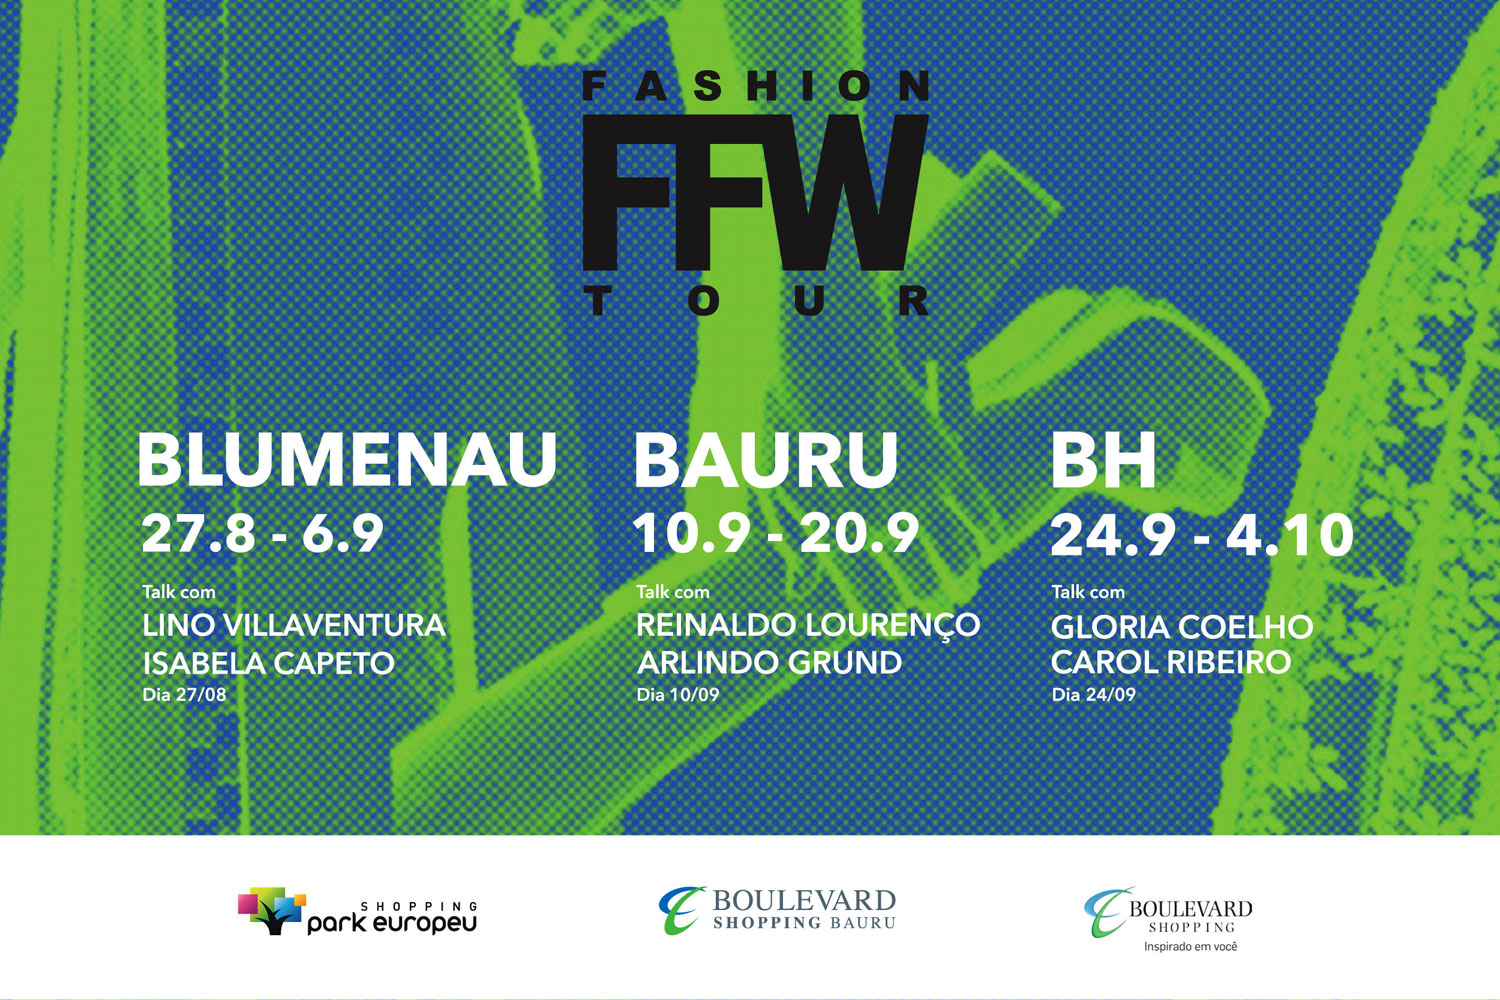 ffw-fashion-tour-2015-cidades-datas